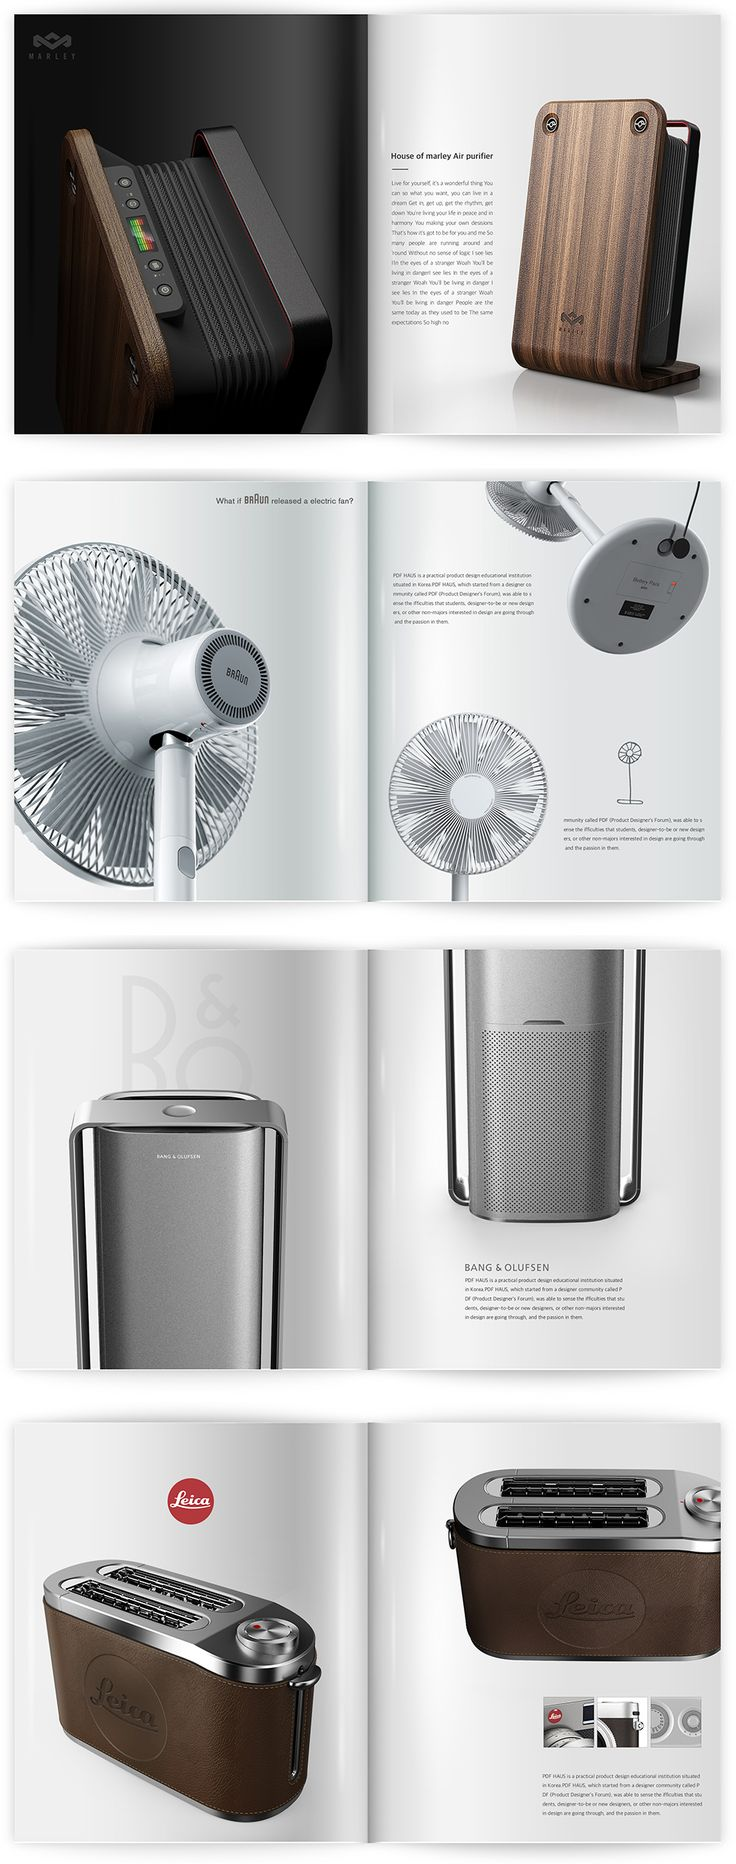 Product design / Industrial design / 제품디자인 / 산업디자인 /Industrial / book / Brochure…